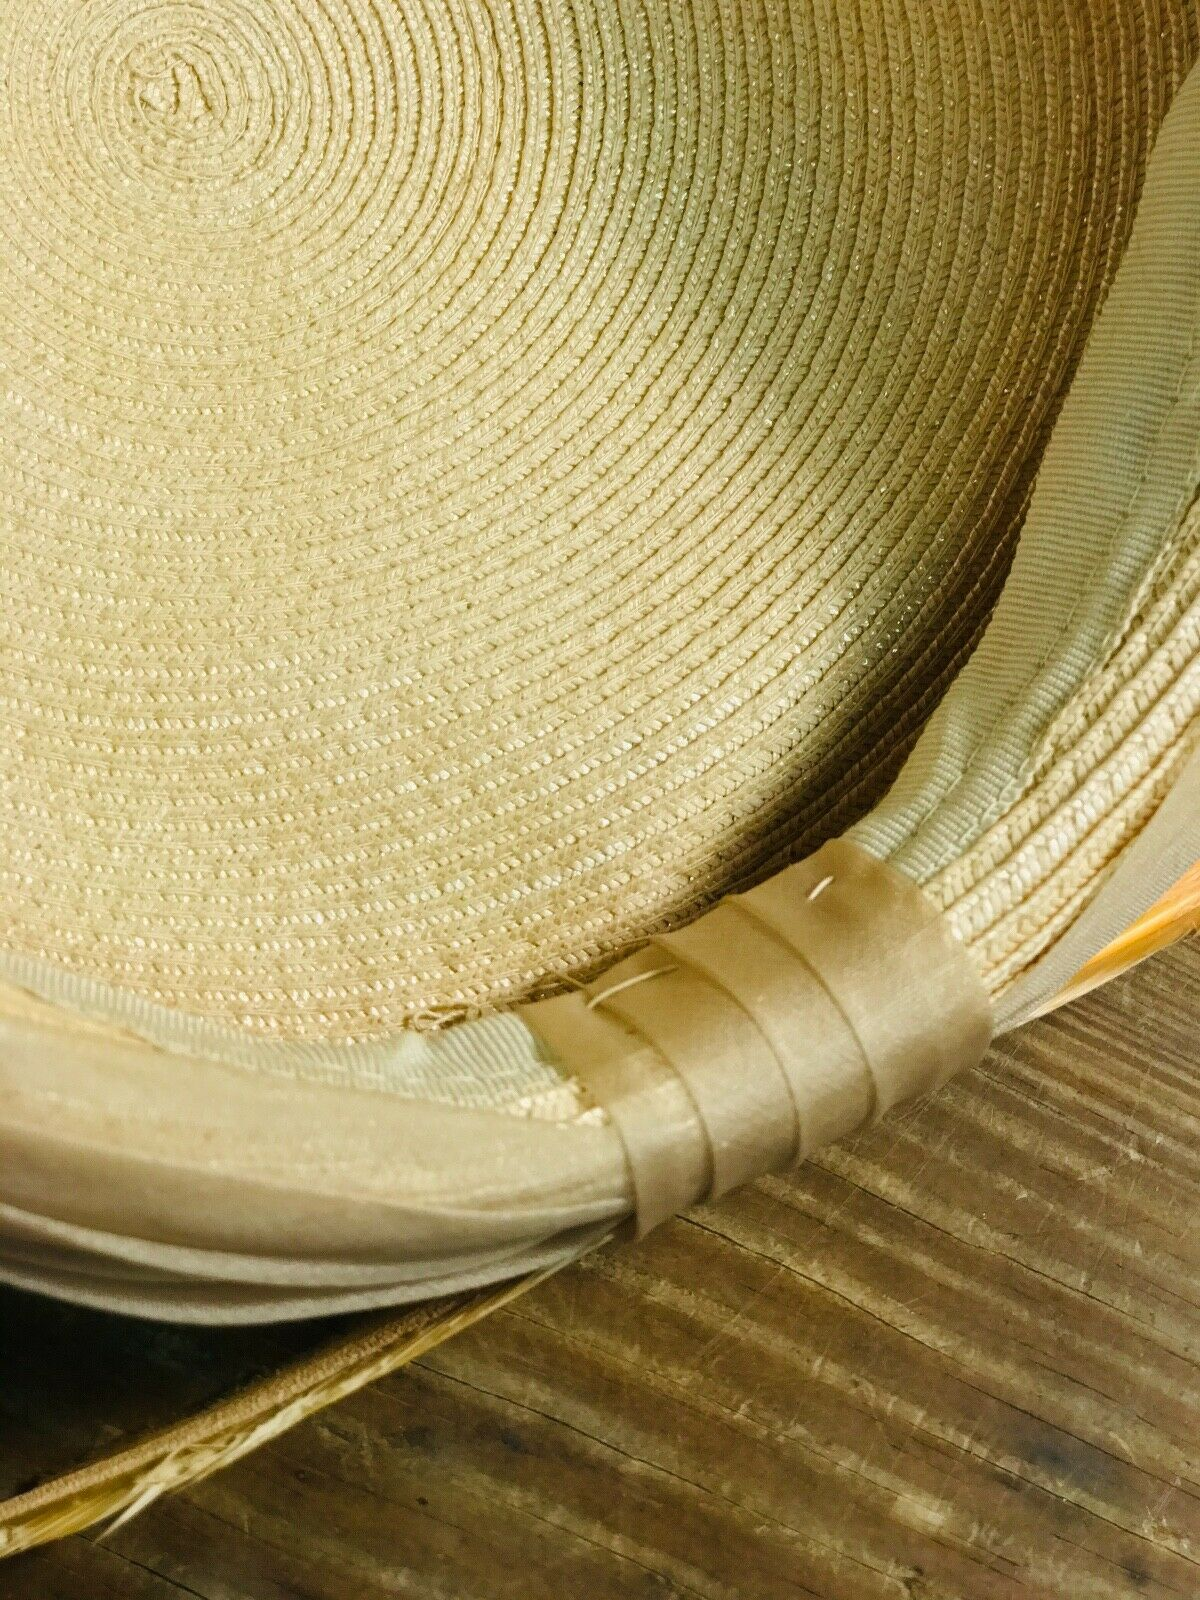 Vintage Womens Woven Wheat Straw Cap - image 6